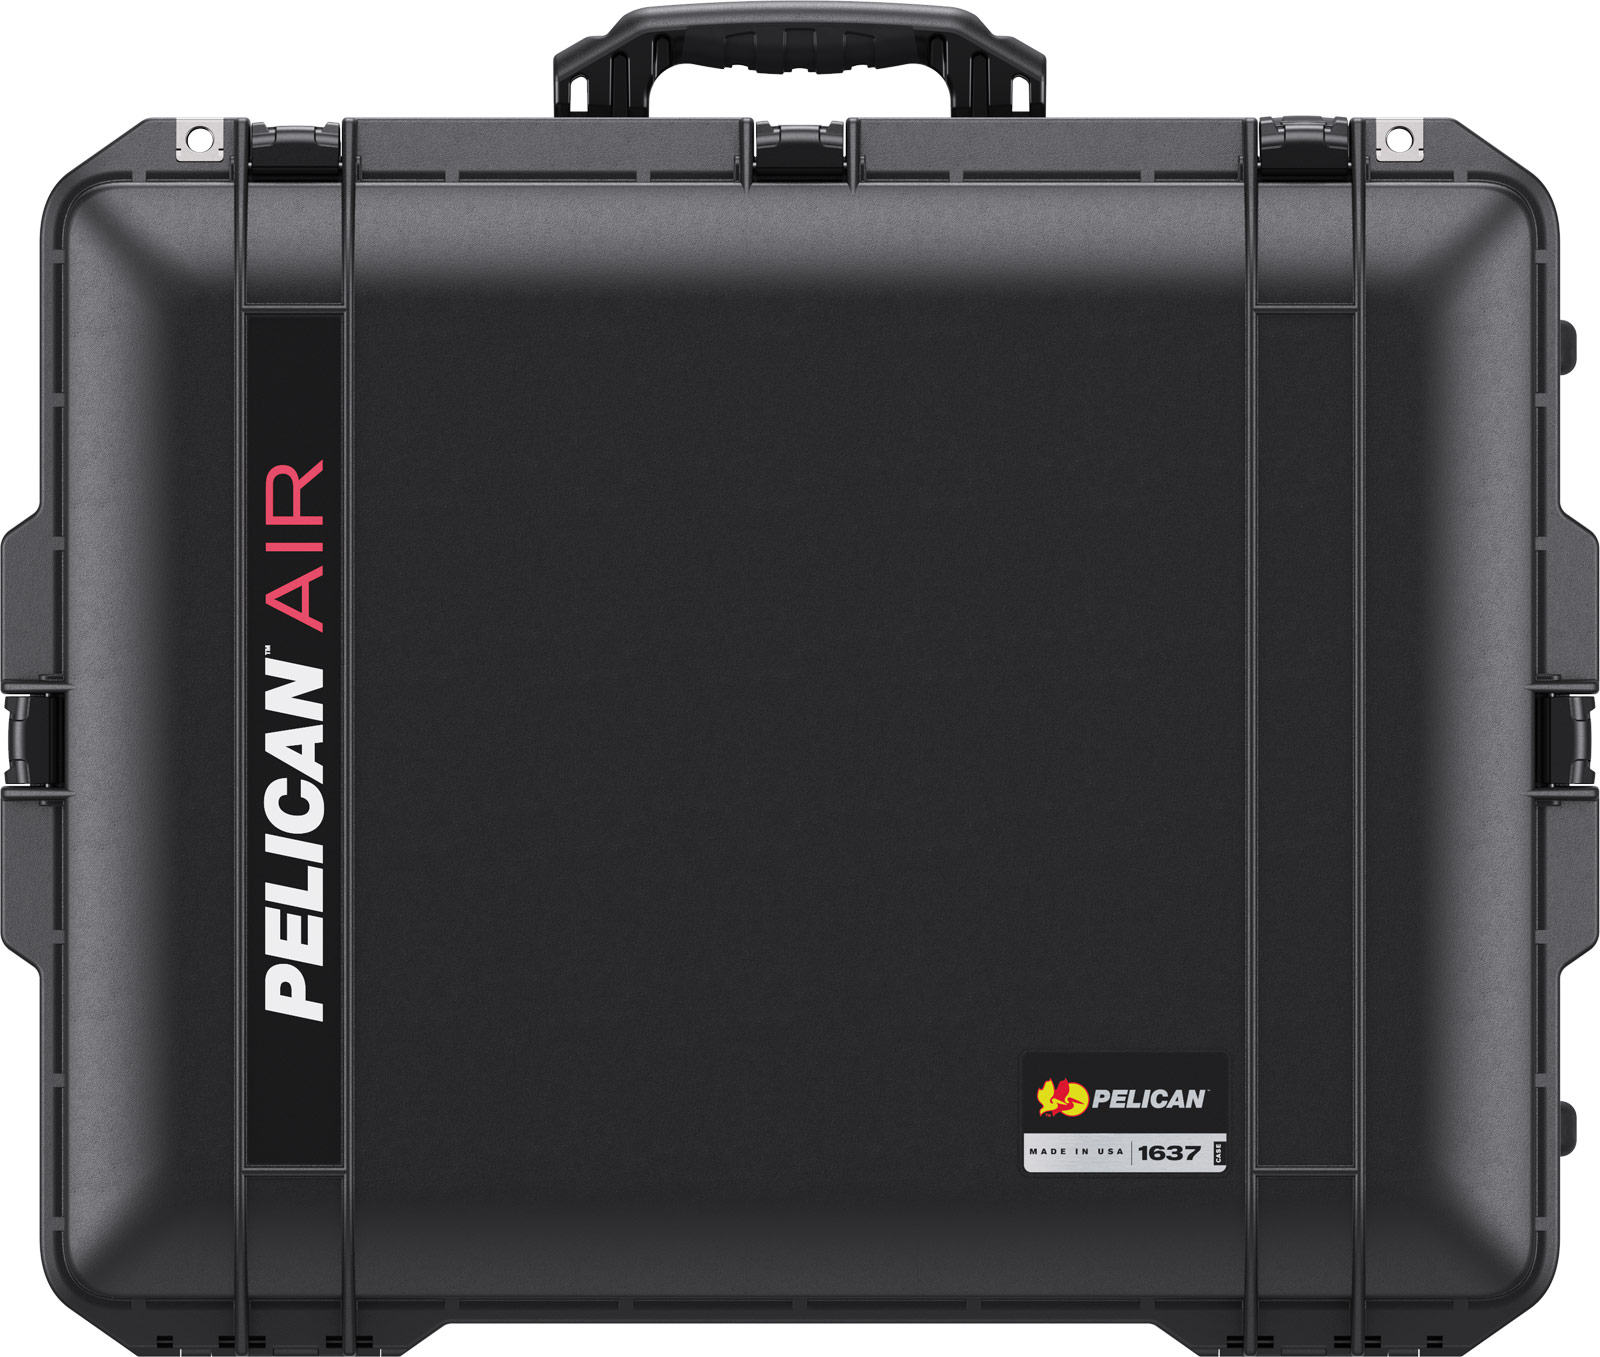 pelican air cases deep case rolling travel